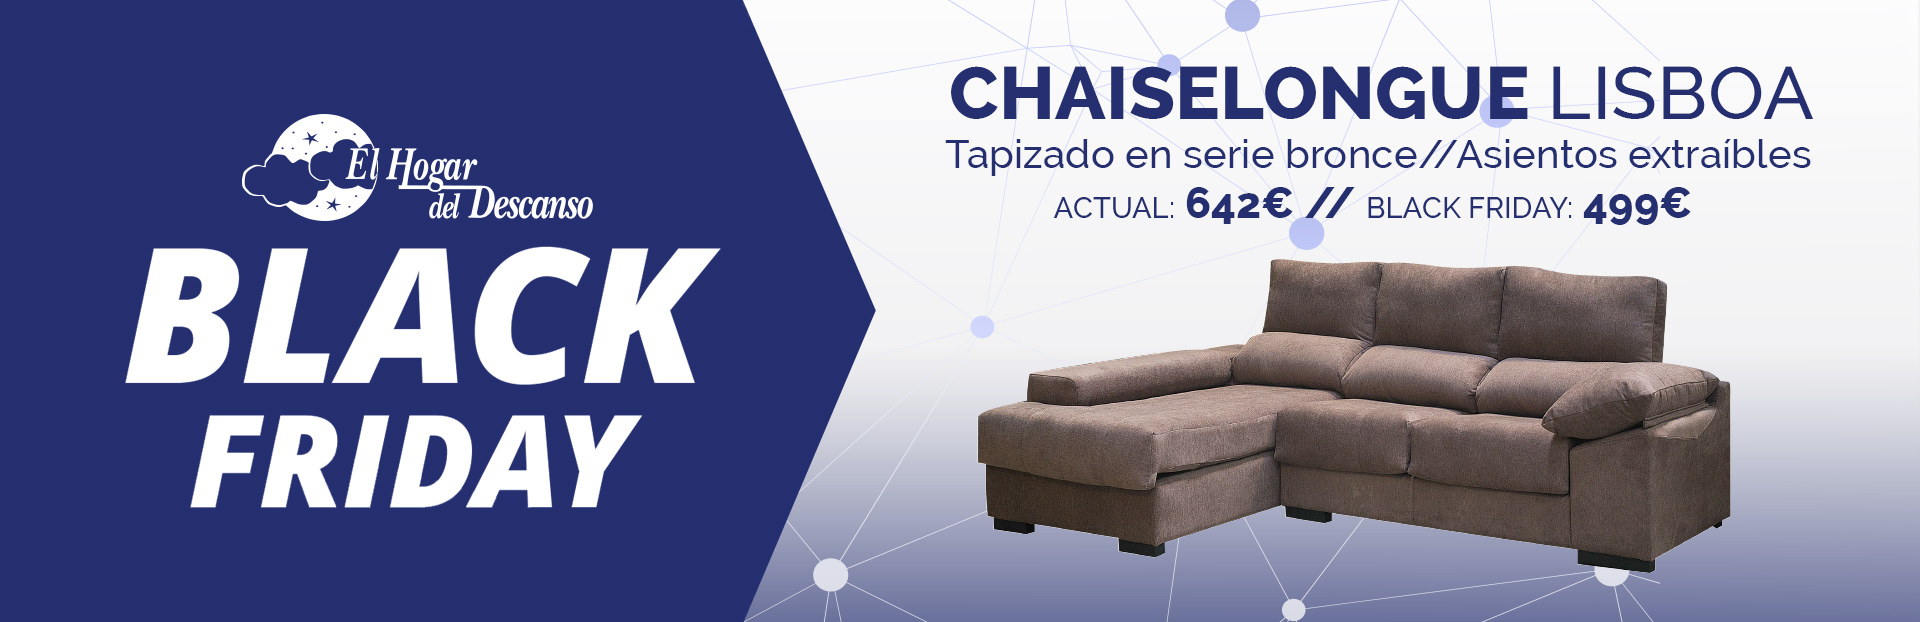 Comienza el black friday en nuestras tiendas chaiselongue - Chaise black friday ...